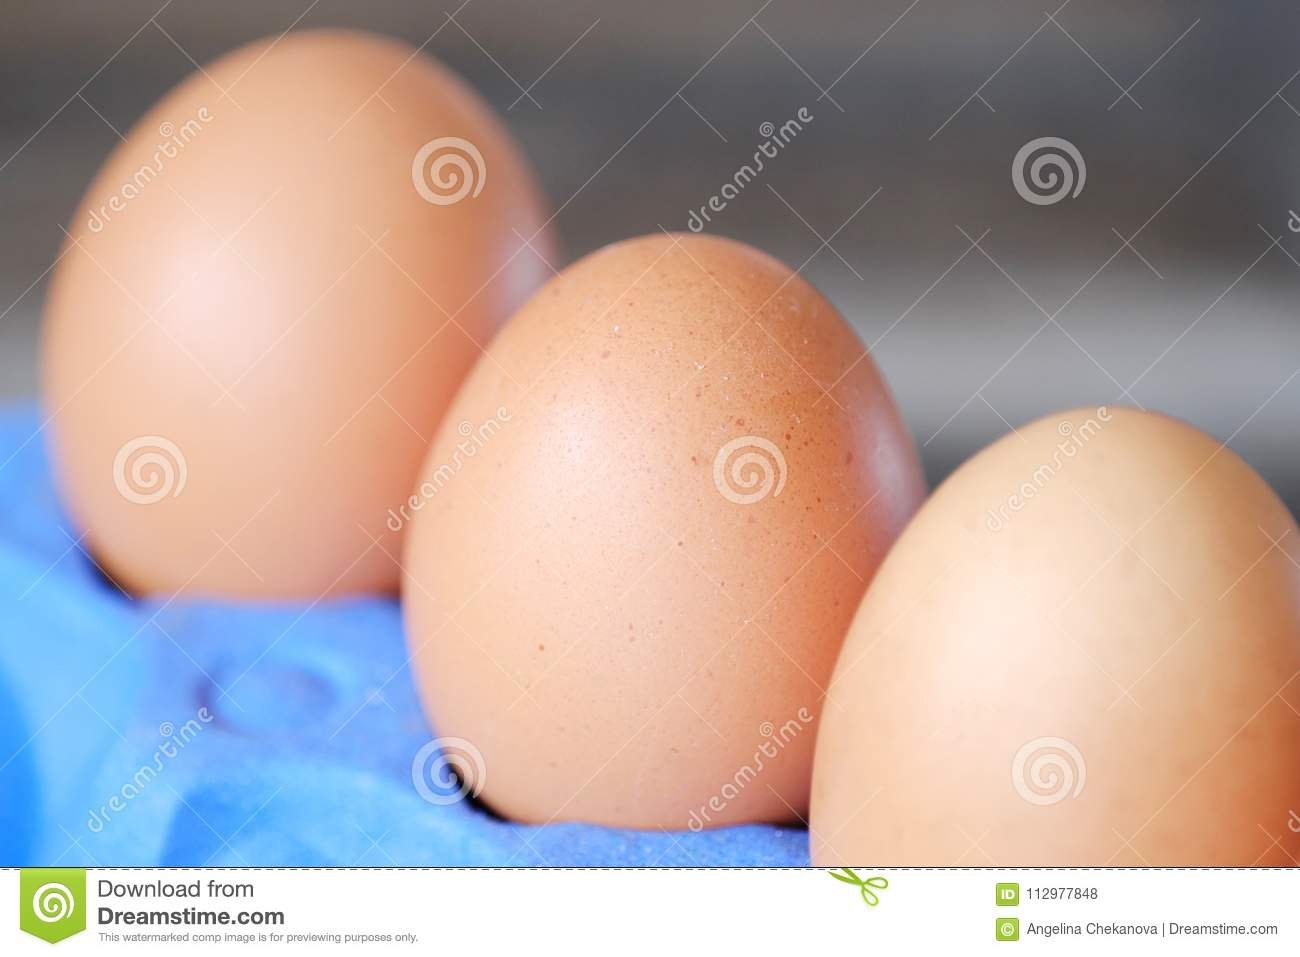 Chicken eggs in the purple package on the table